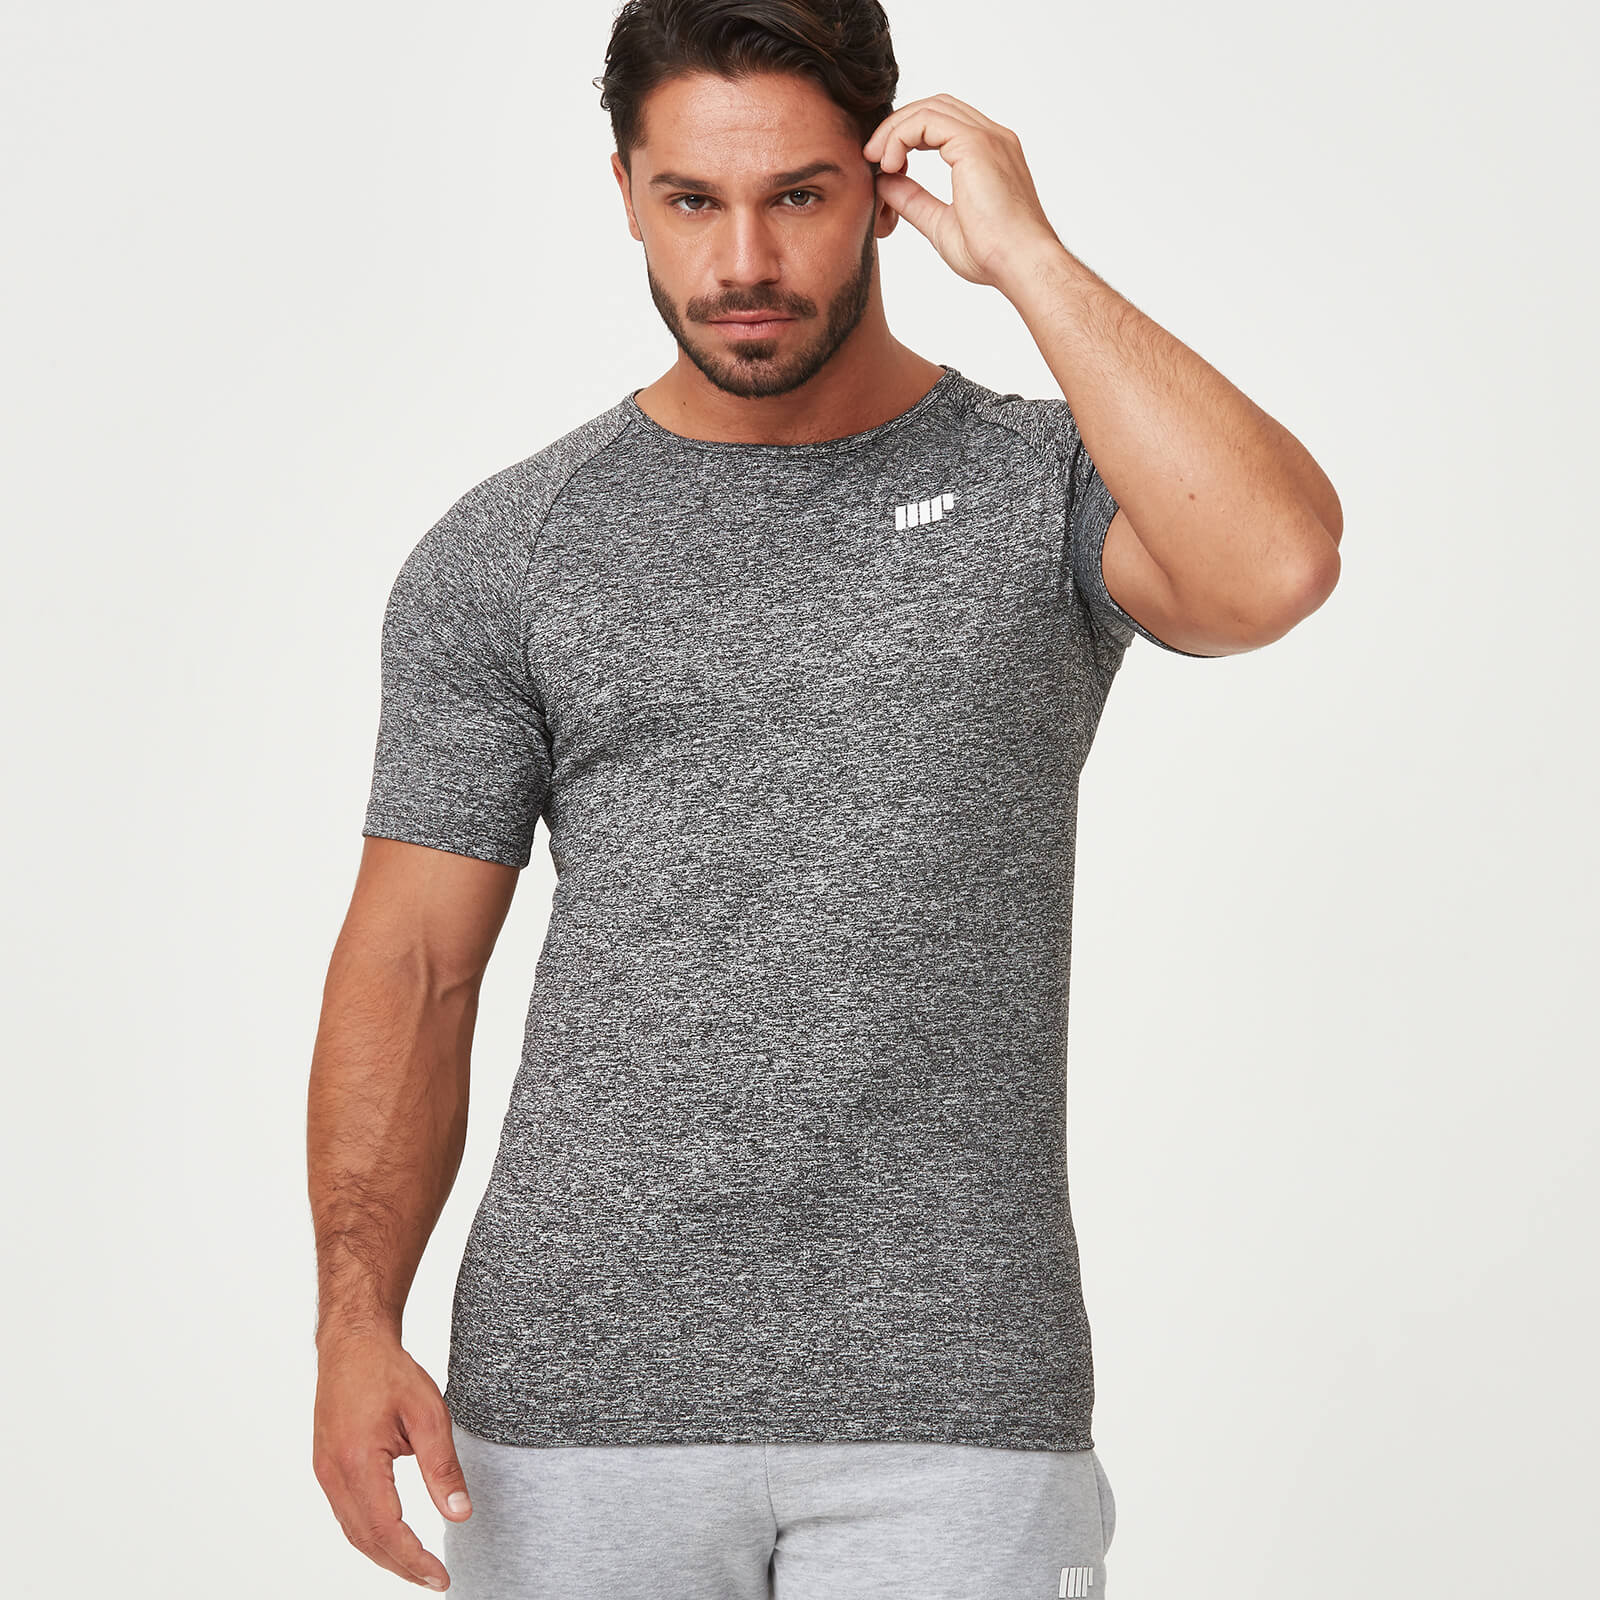 Myprotein Dry Tech T-Shirt - Charcoal Marl - S